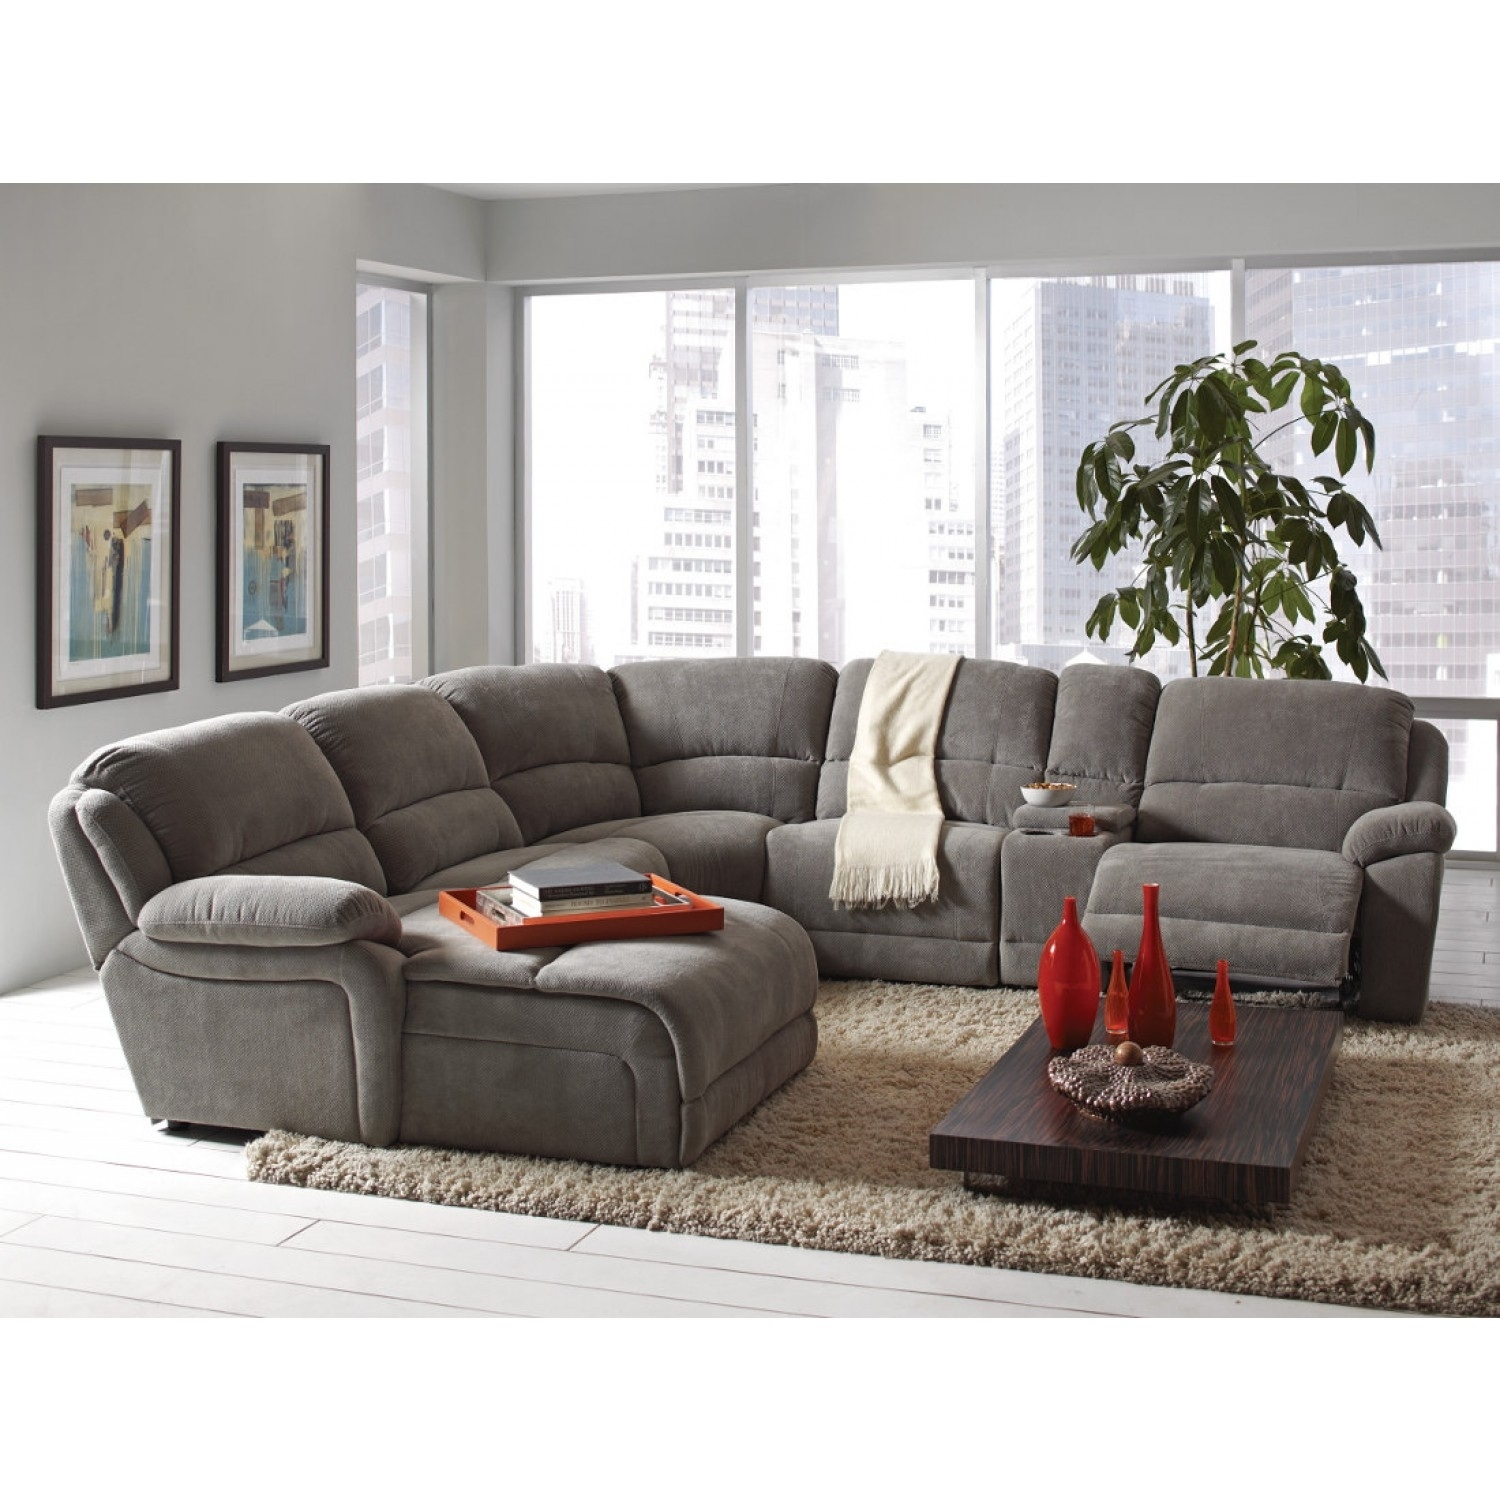 Coaster Mackenzie Silver 6 Piece Reclining Sectional Sofa With Regarding Grand Rapids Mi Sectional Sofas (View 8 of 10)